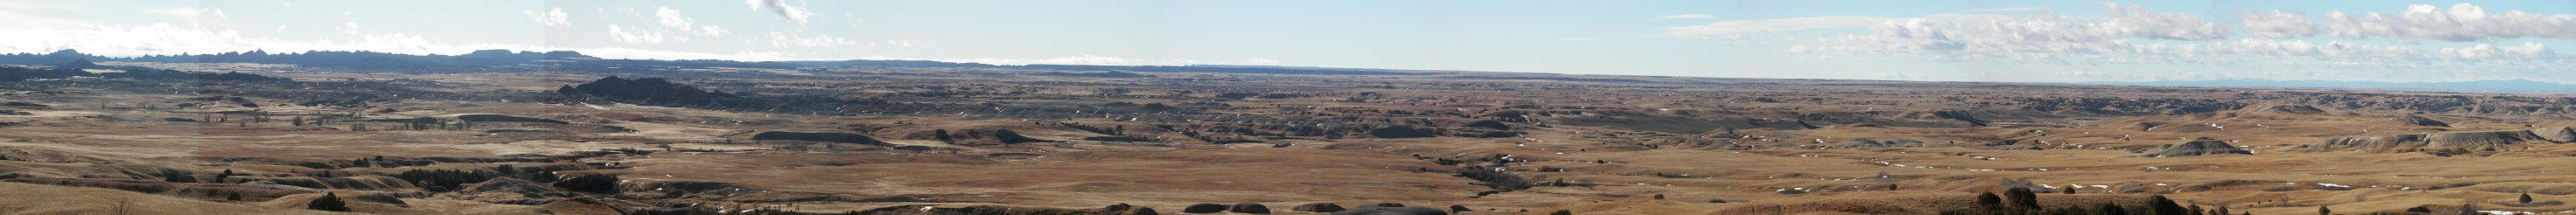 Panoramic Badlands by Littlelion225